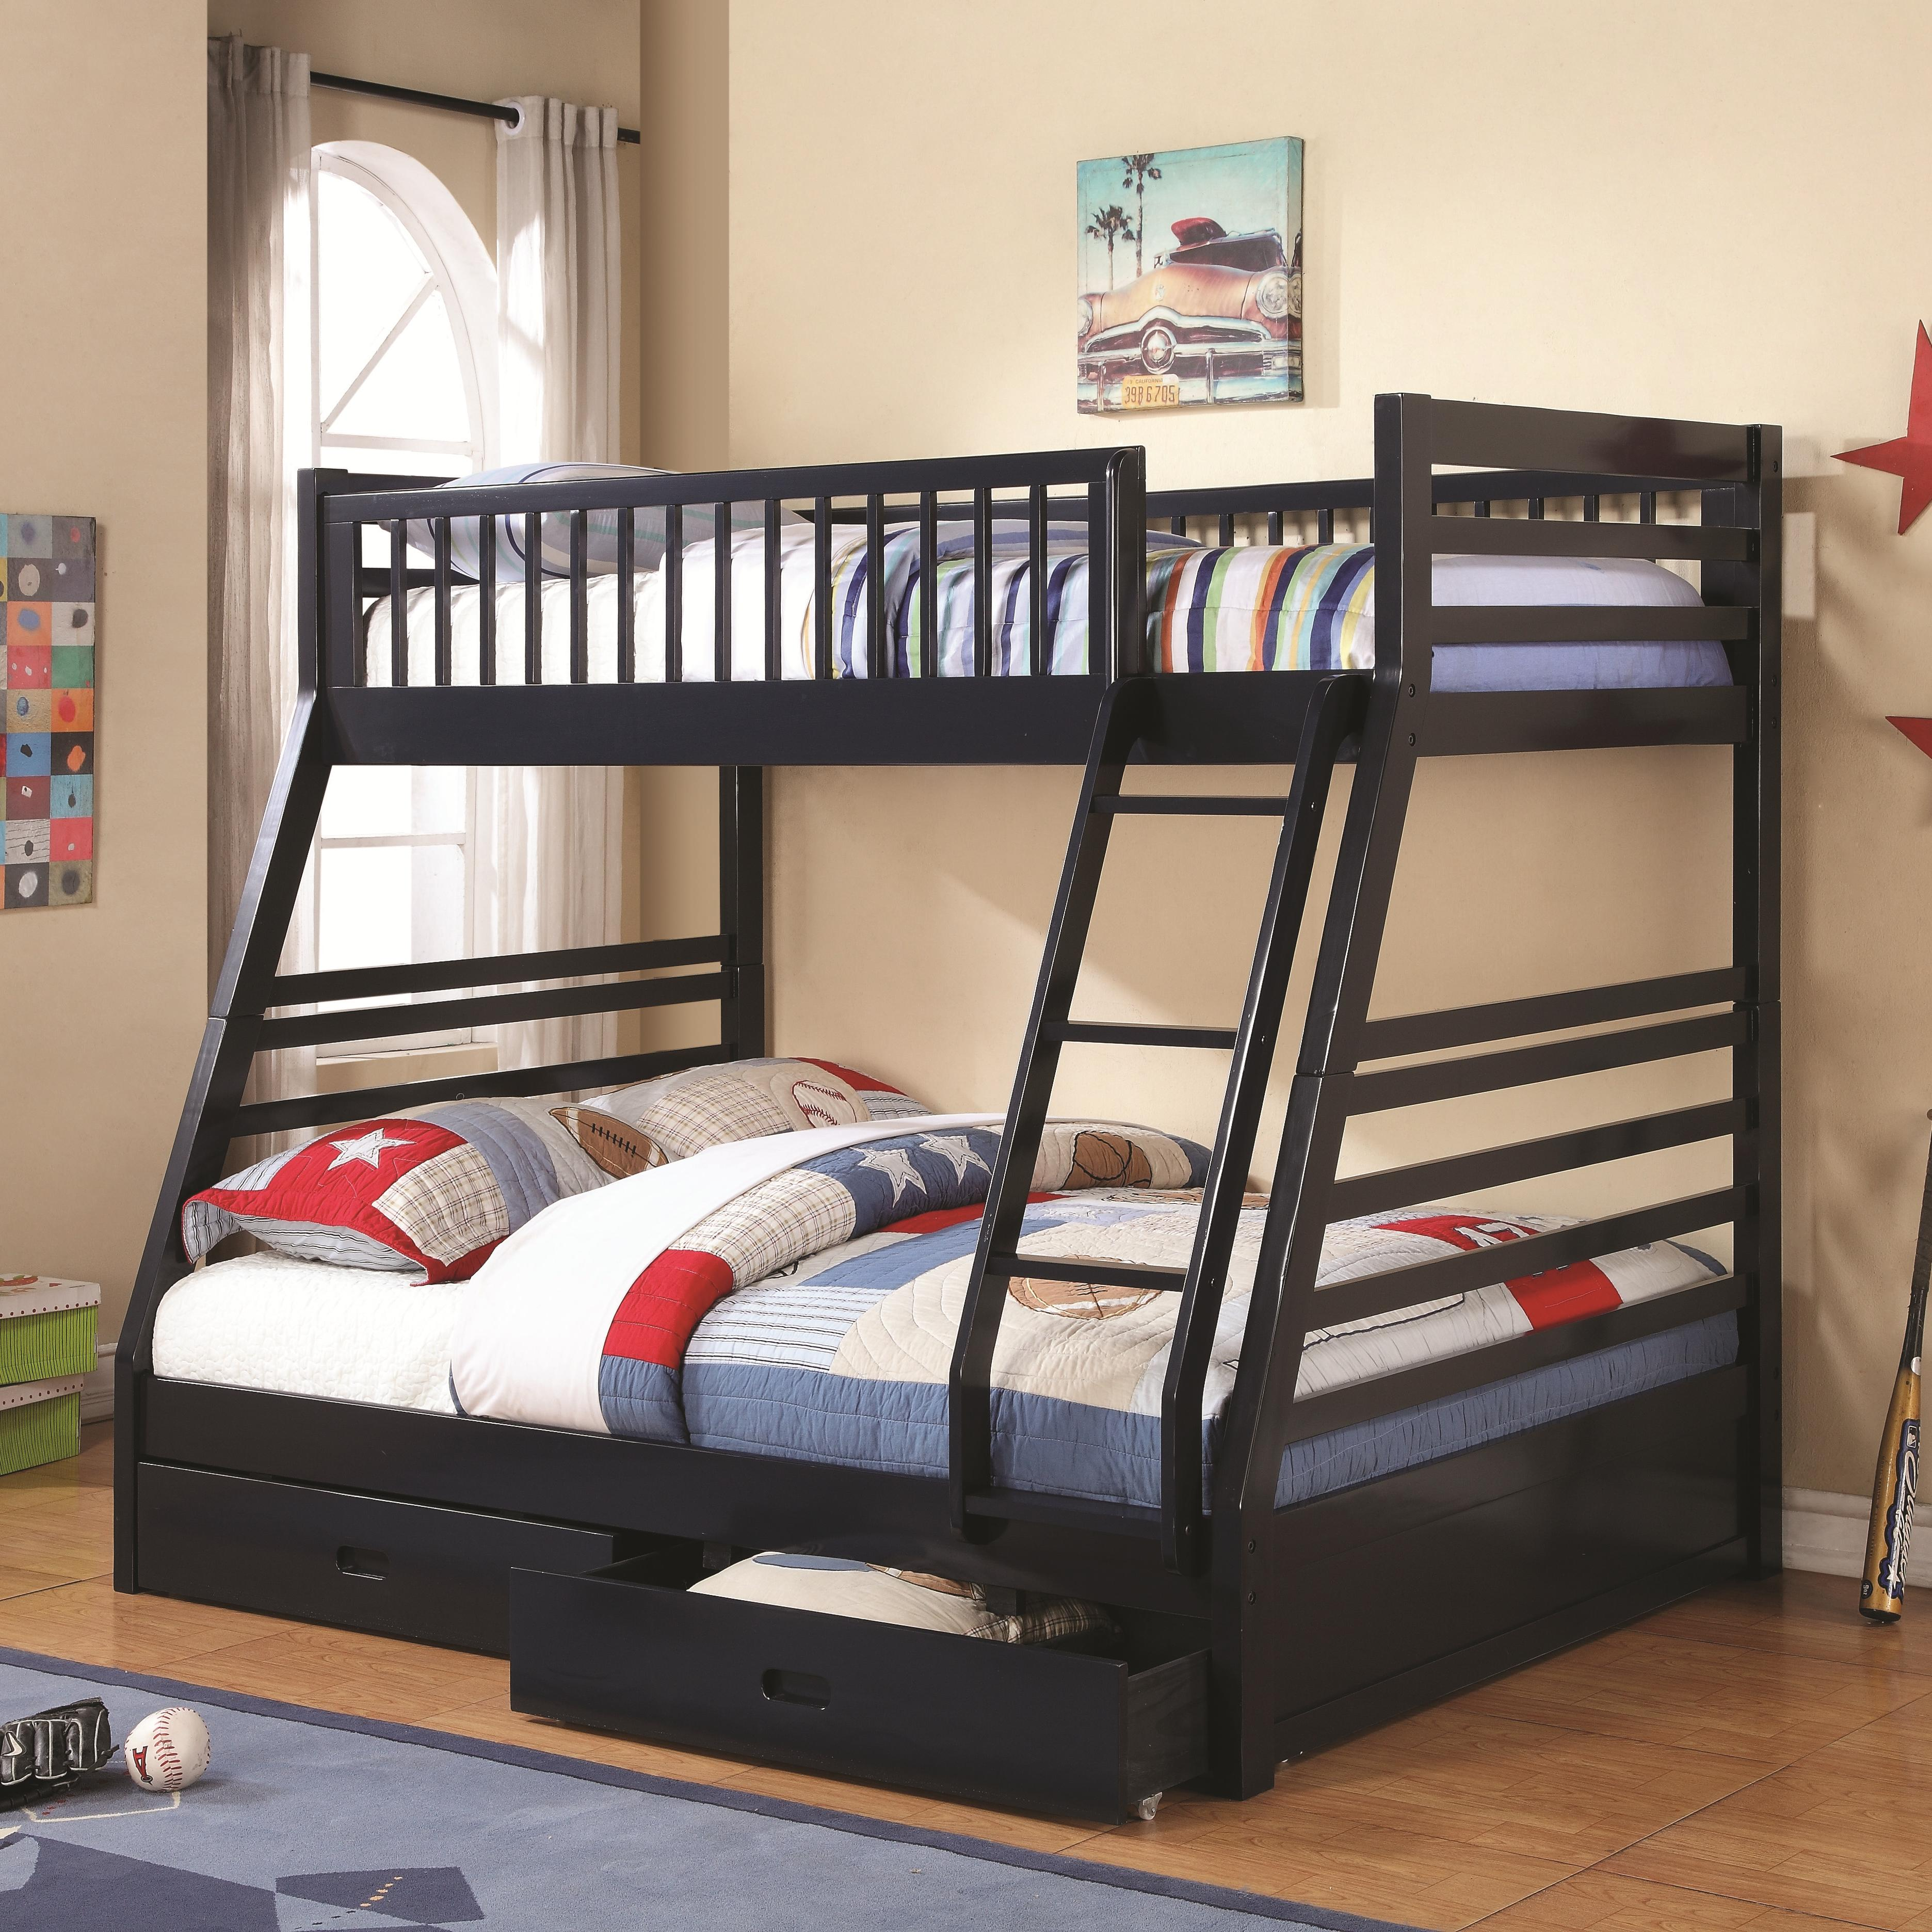 Coaster Bunks Twin over Full Bunk Bed - Item Number: 460181